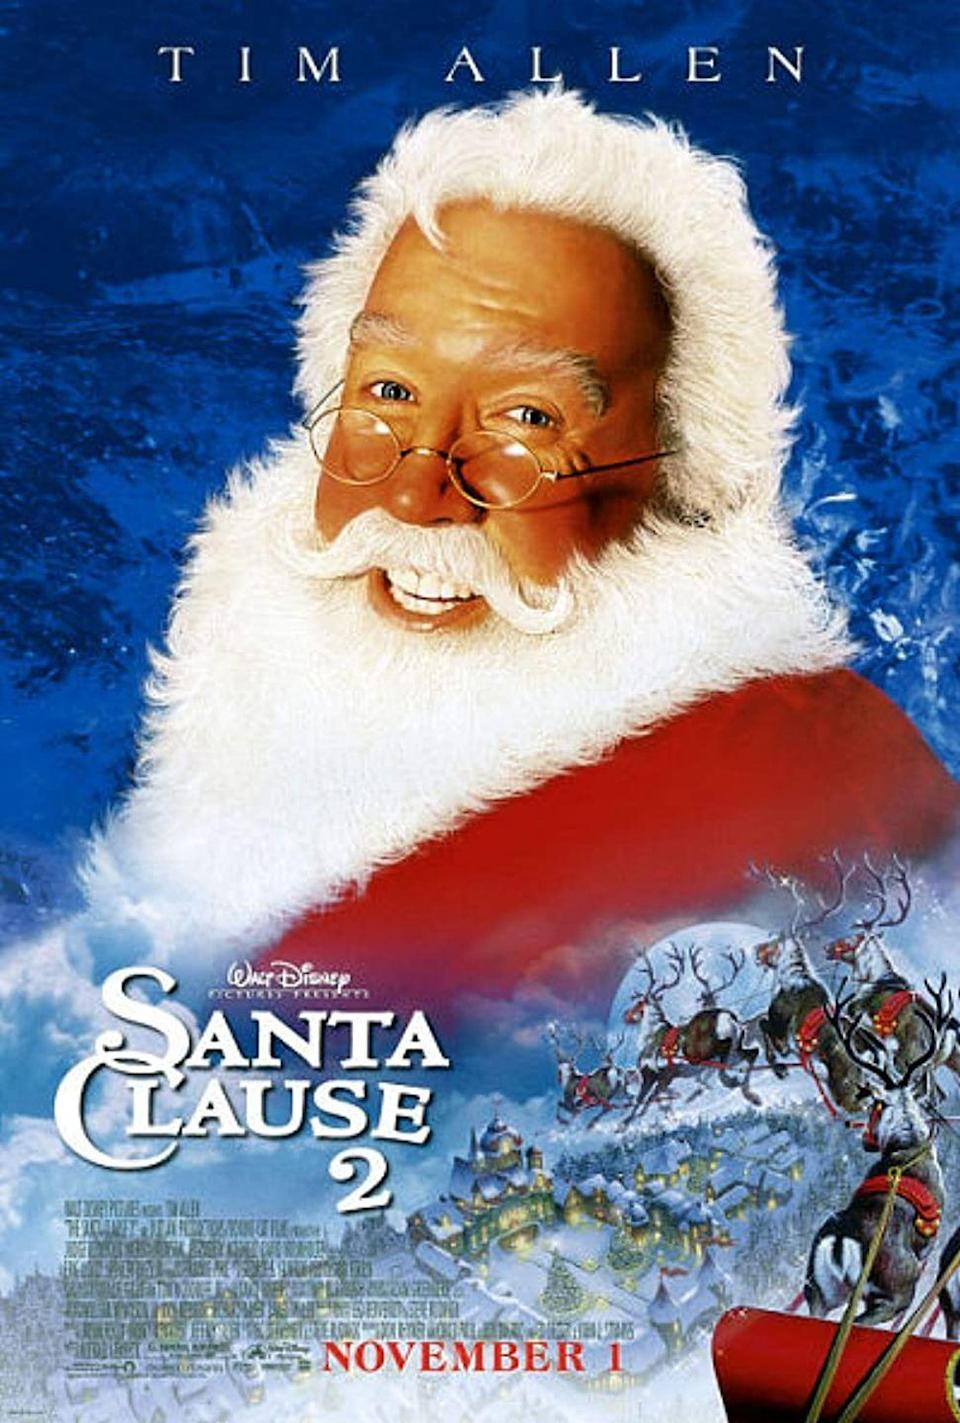 """<p>If you loved the first Santa Clause movie, be sure to watch the heartwarming sequel which this time has Santa looking for a Mrs. Claus.</p><p><a class=""""link rapid-noclick-resp"""" href=""""https://www.amazon.com/Santa-Clause-2-Tim-Allen/dp/B005BW8MP2?tag=syn-yahoo-20&ascsubtag=%5Bartid%7C10055.g.1315%5Bsrc%7Cyahoo-us"""" rel=""""nofollow noopener"""" target=""""_blank"""" data-ylk=""""slk:WATCH NOW"""">WATCH NOW</a></p>"""